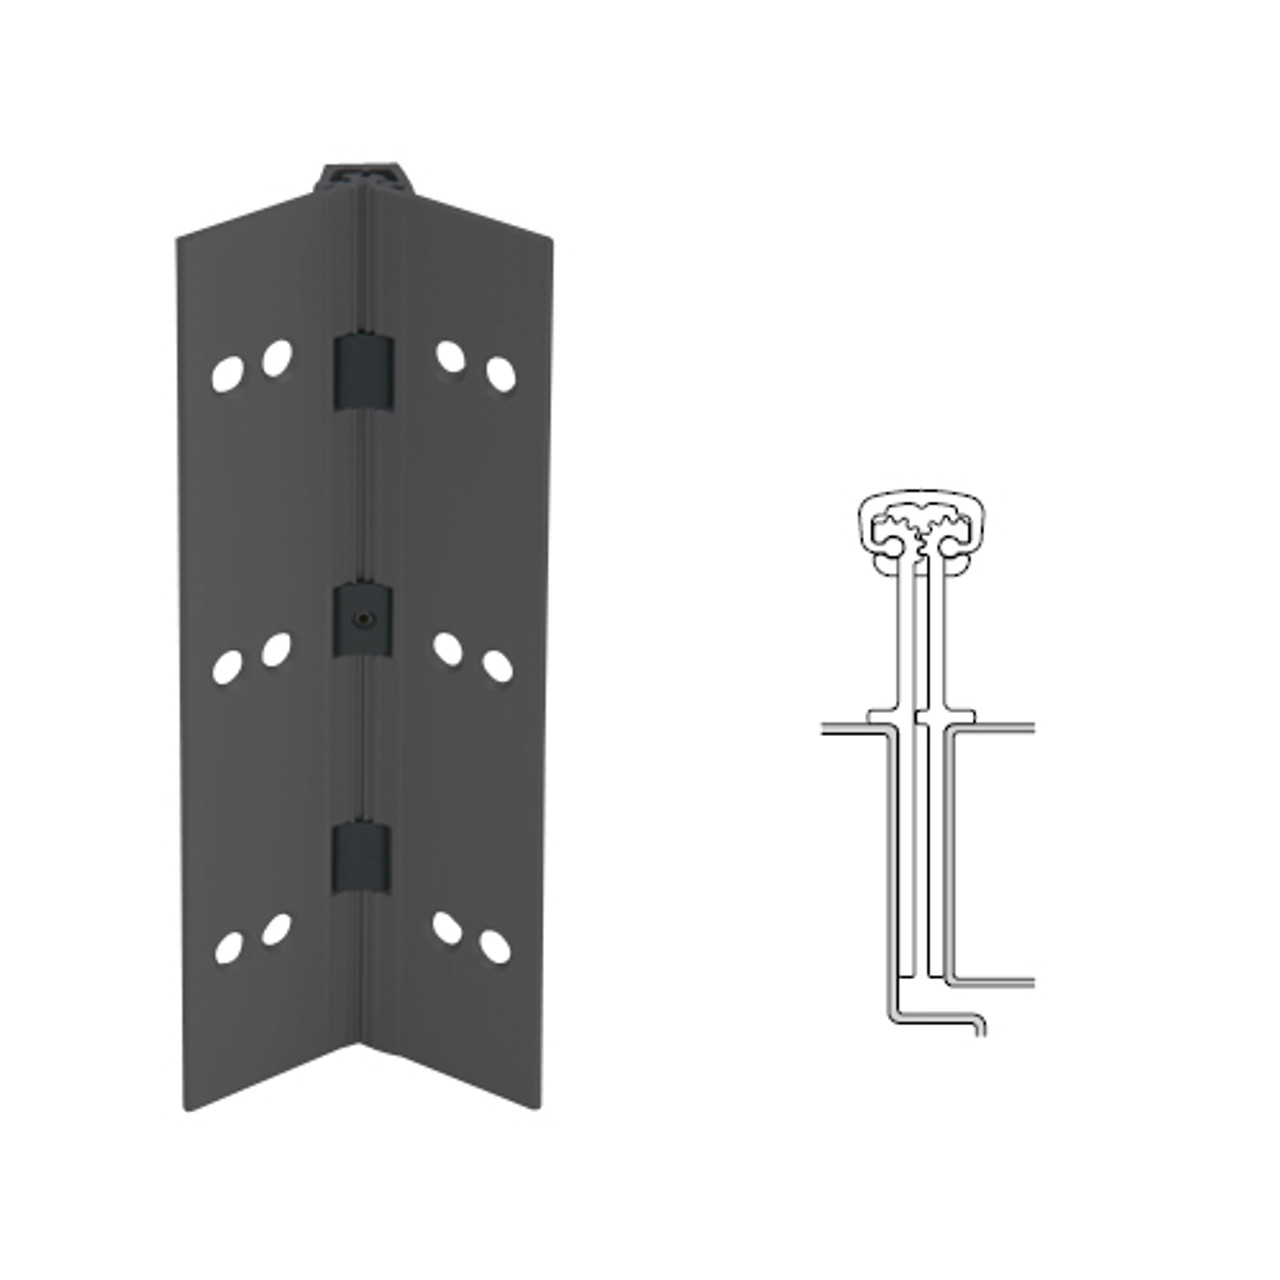 040XY-315AN-85-SECHM IVES Full Mortise Continuous Geared Hinges with Security Screws - Hex Pin Drive in Anodized Black